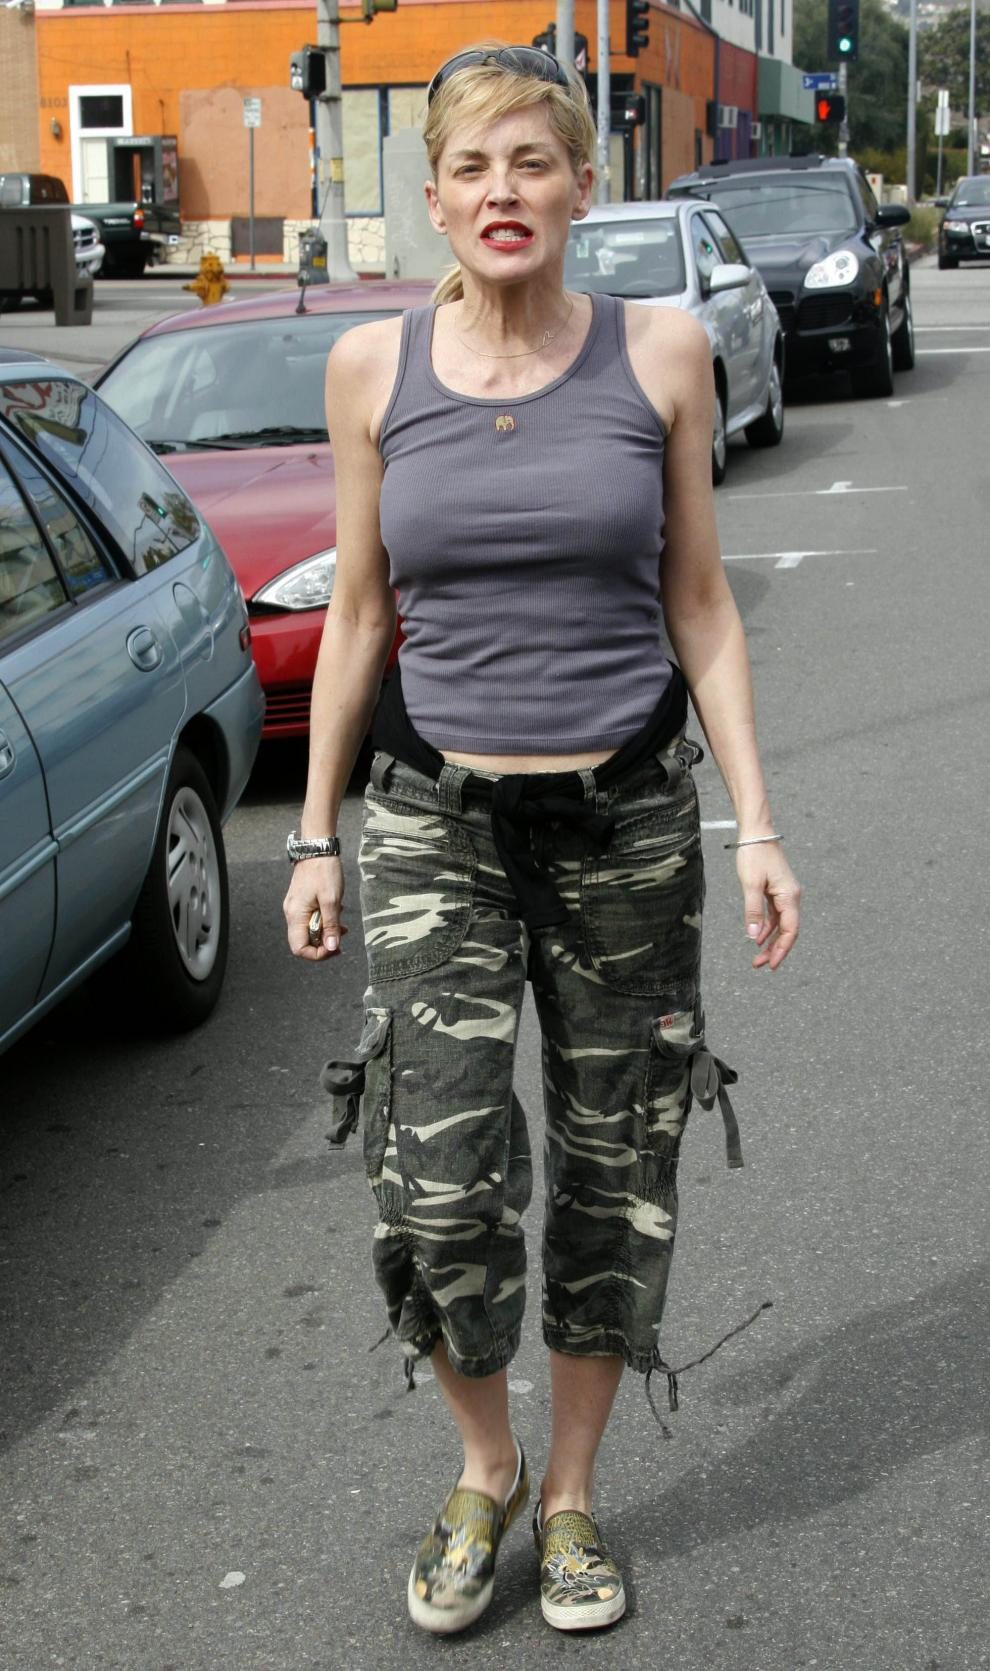 http://lekowicz.com/wren_forum/wp-content/imageposts/2007/03/sharon-stone-in-guys-shoes.jpg